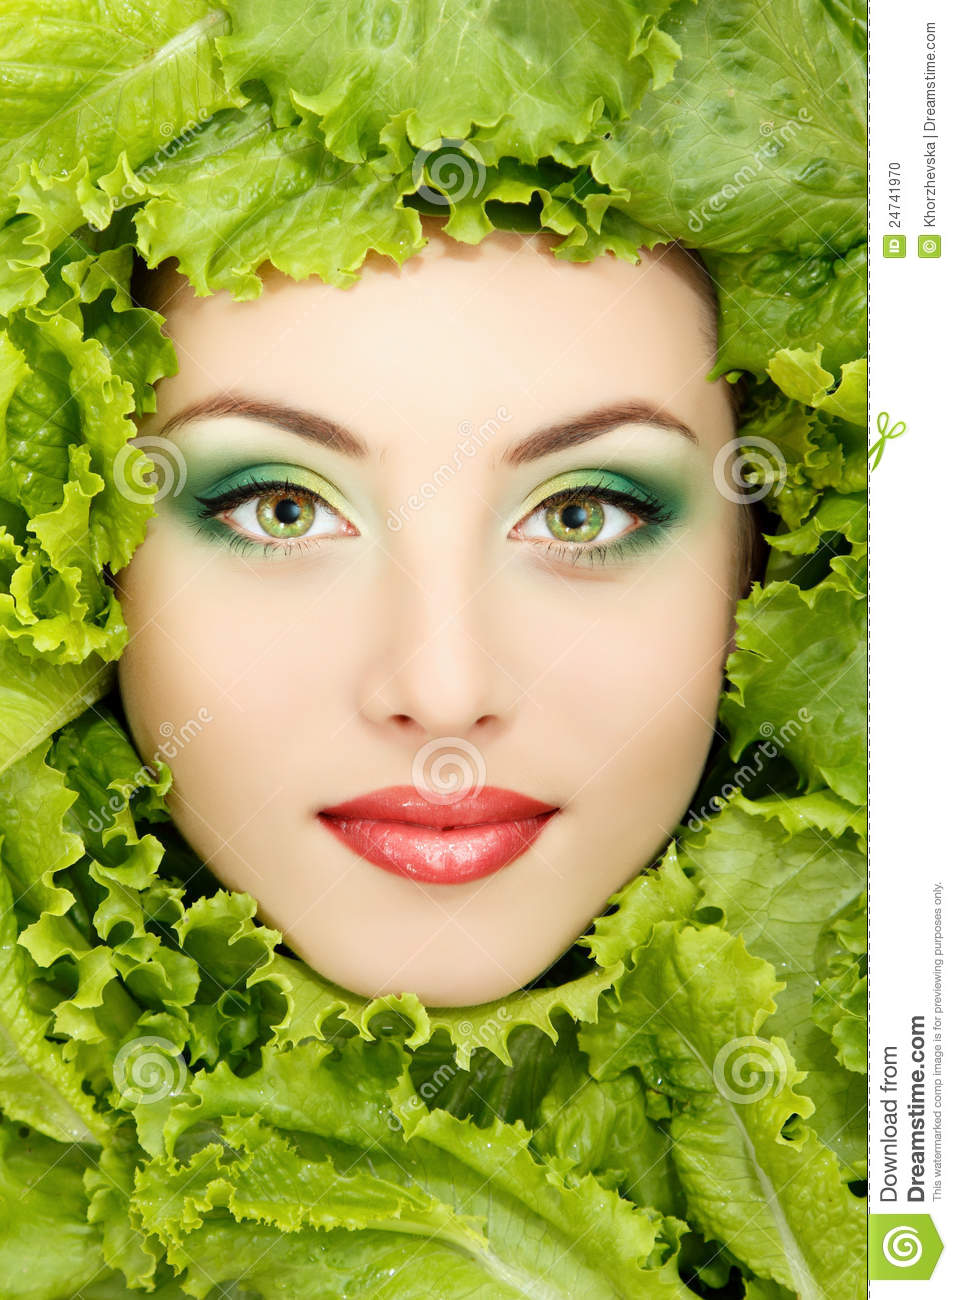 Woman Beauty Face With Green Fresh Lettuce Leaves Stock ...